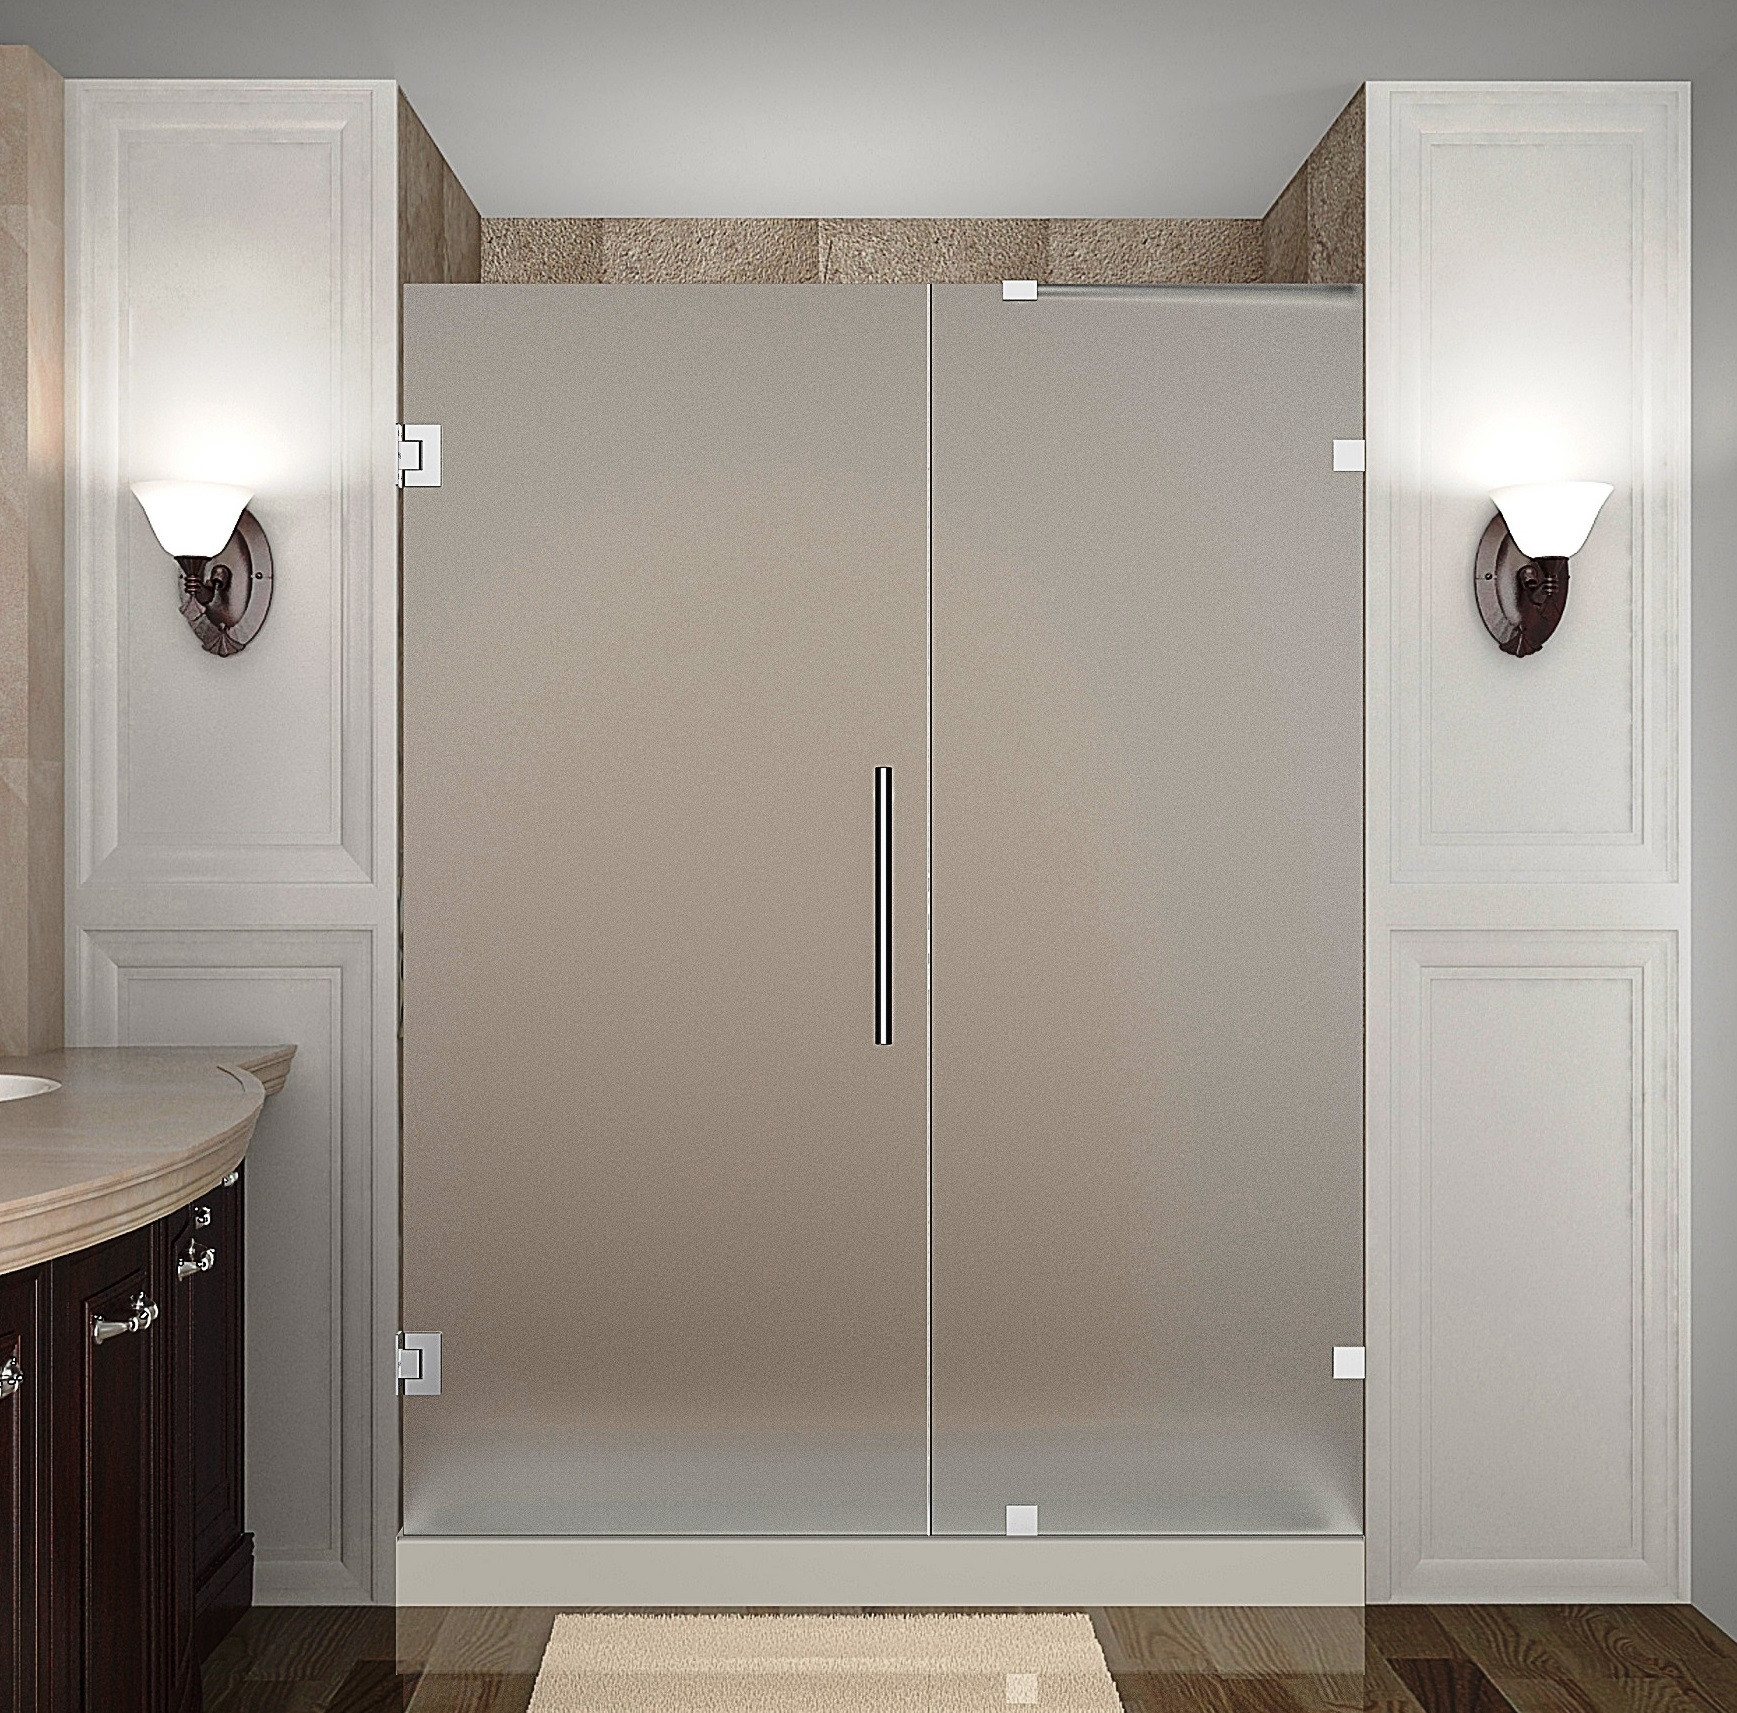 Aston Global SDR985F-CH-64-10 Completely Frameless Hinged Frosted Glass Shower Door In Chrome